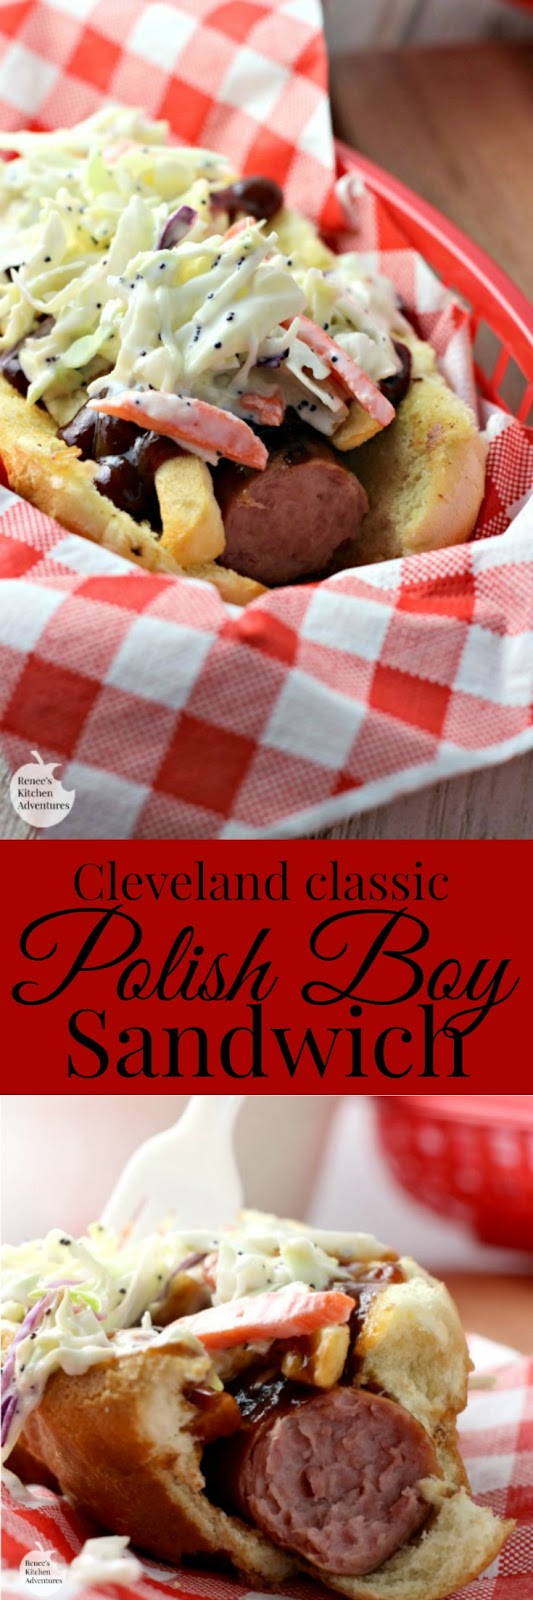 Polish Boy Sandwich | by Renee's Kitchen Adventures - easy recipe for a classic Cleveland taste! Kielbasa, fries, slaw and BBQ sauce all in one delicious sandwich! #SundaySupper